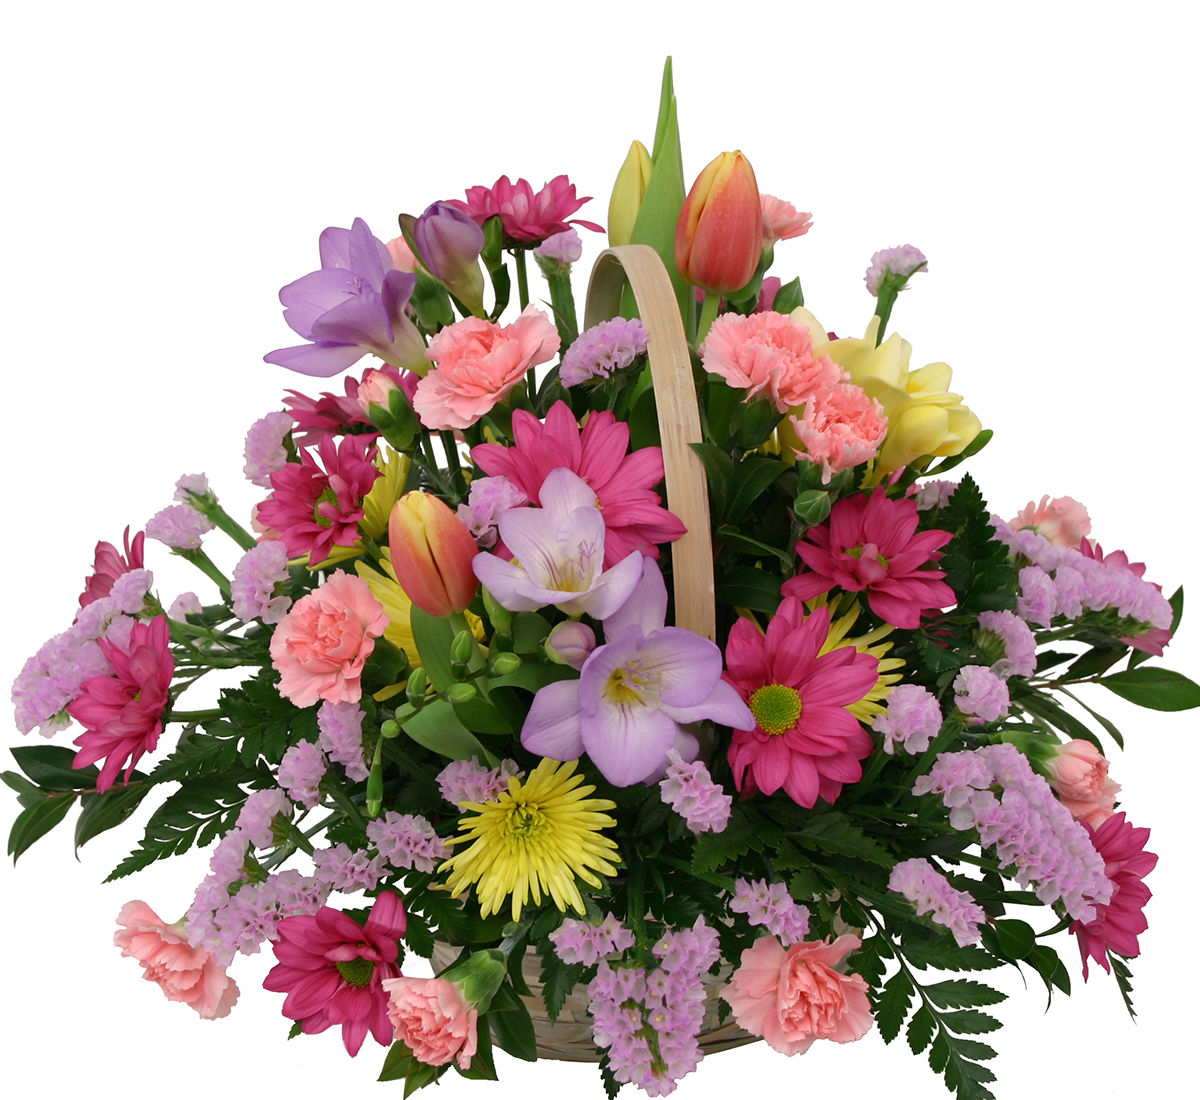 Flower Baskets Usa : Will you all wish our resident nutcase a belated birthday